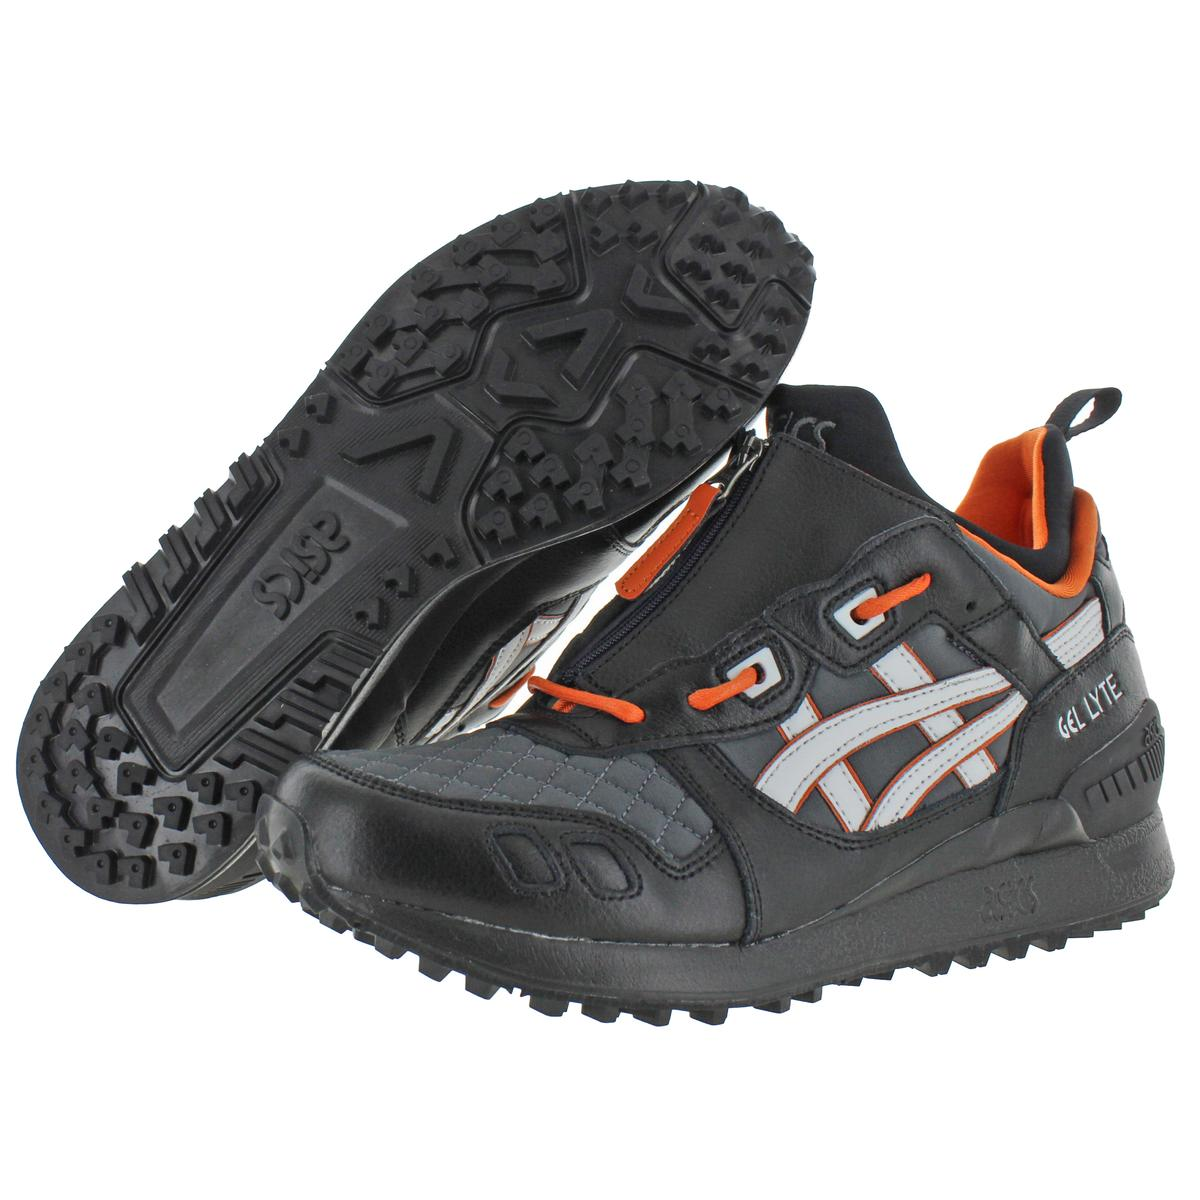 thumbnail 4 - ASICS-Tiger-Mens-Gel-Lyte-MT-Leather-Lace-Up-Mid-Top-Sneakers-Shoes-BHFO-5834